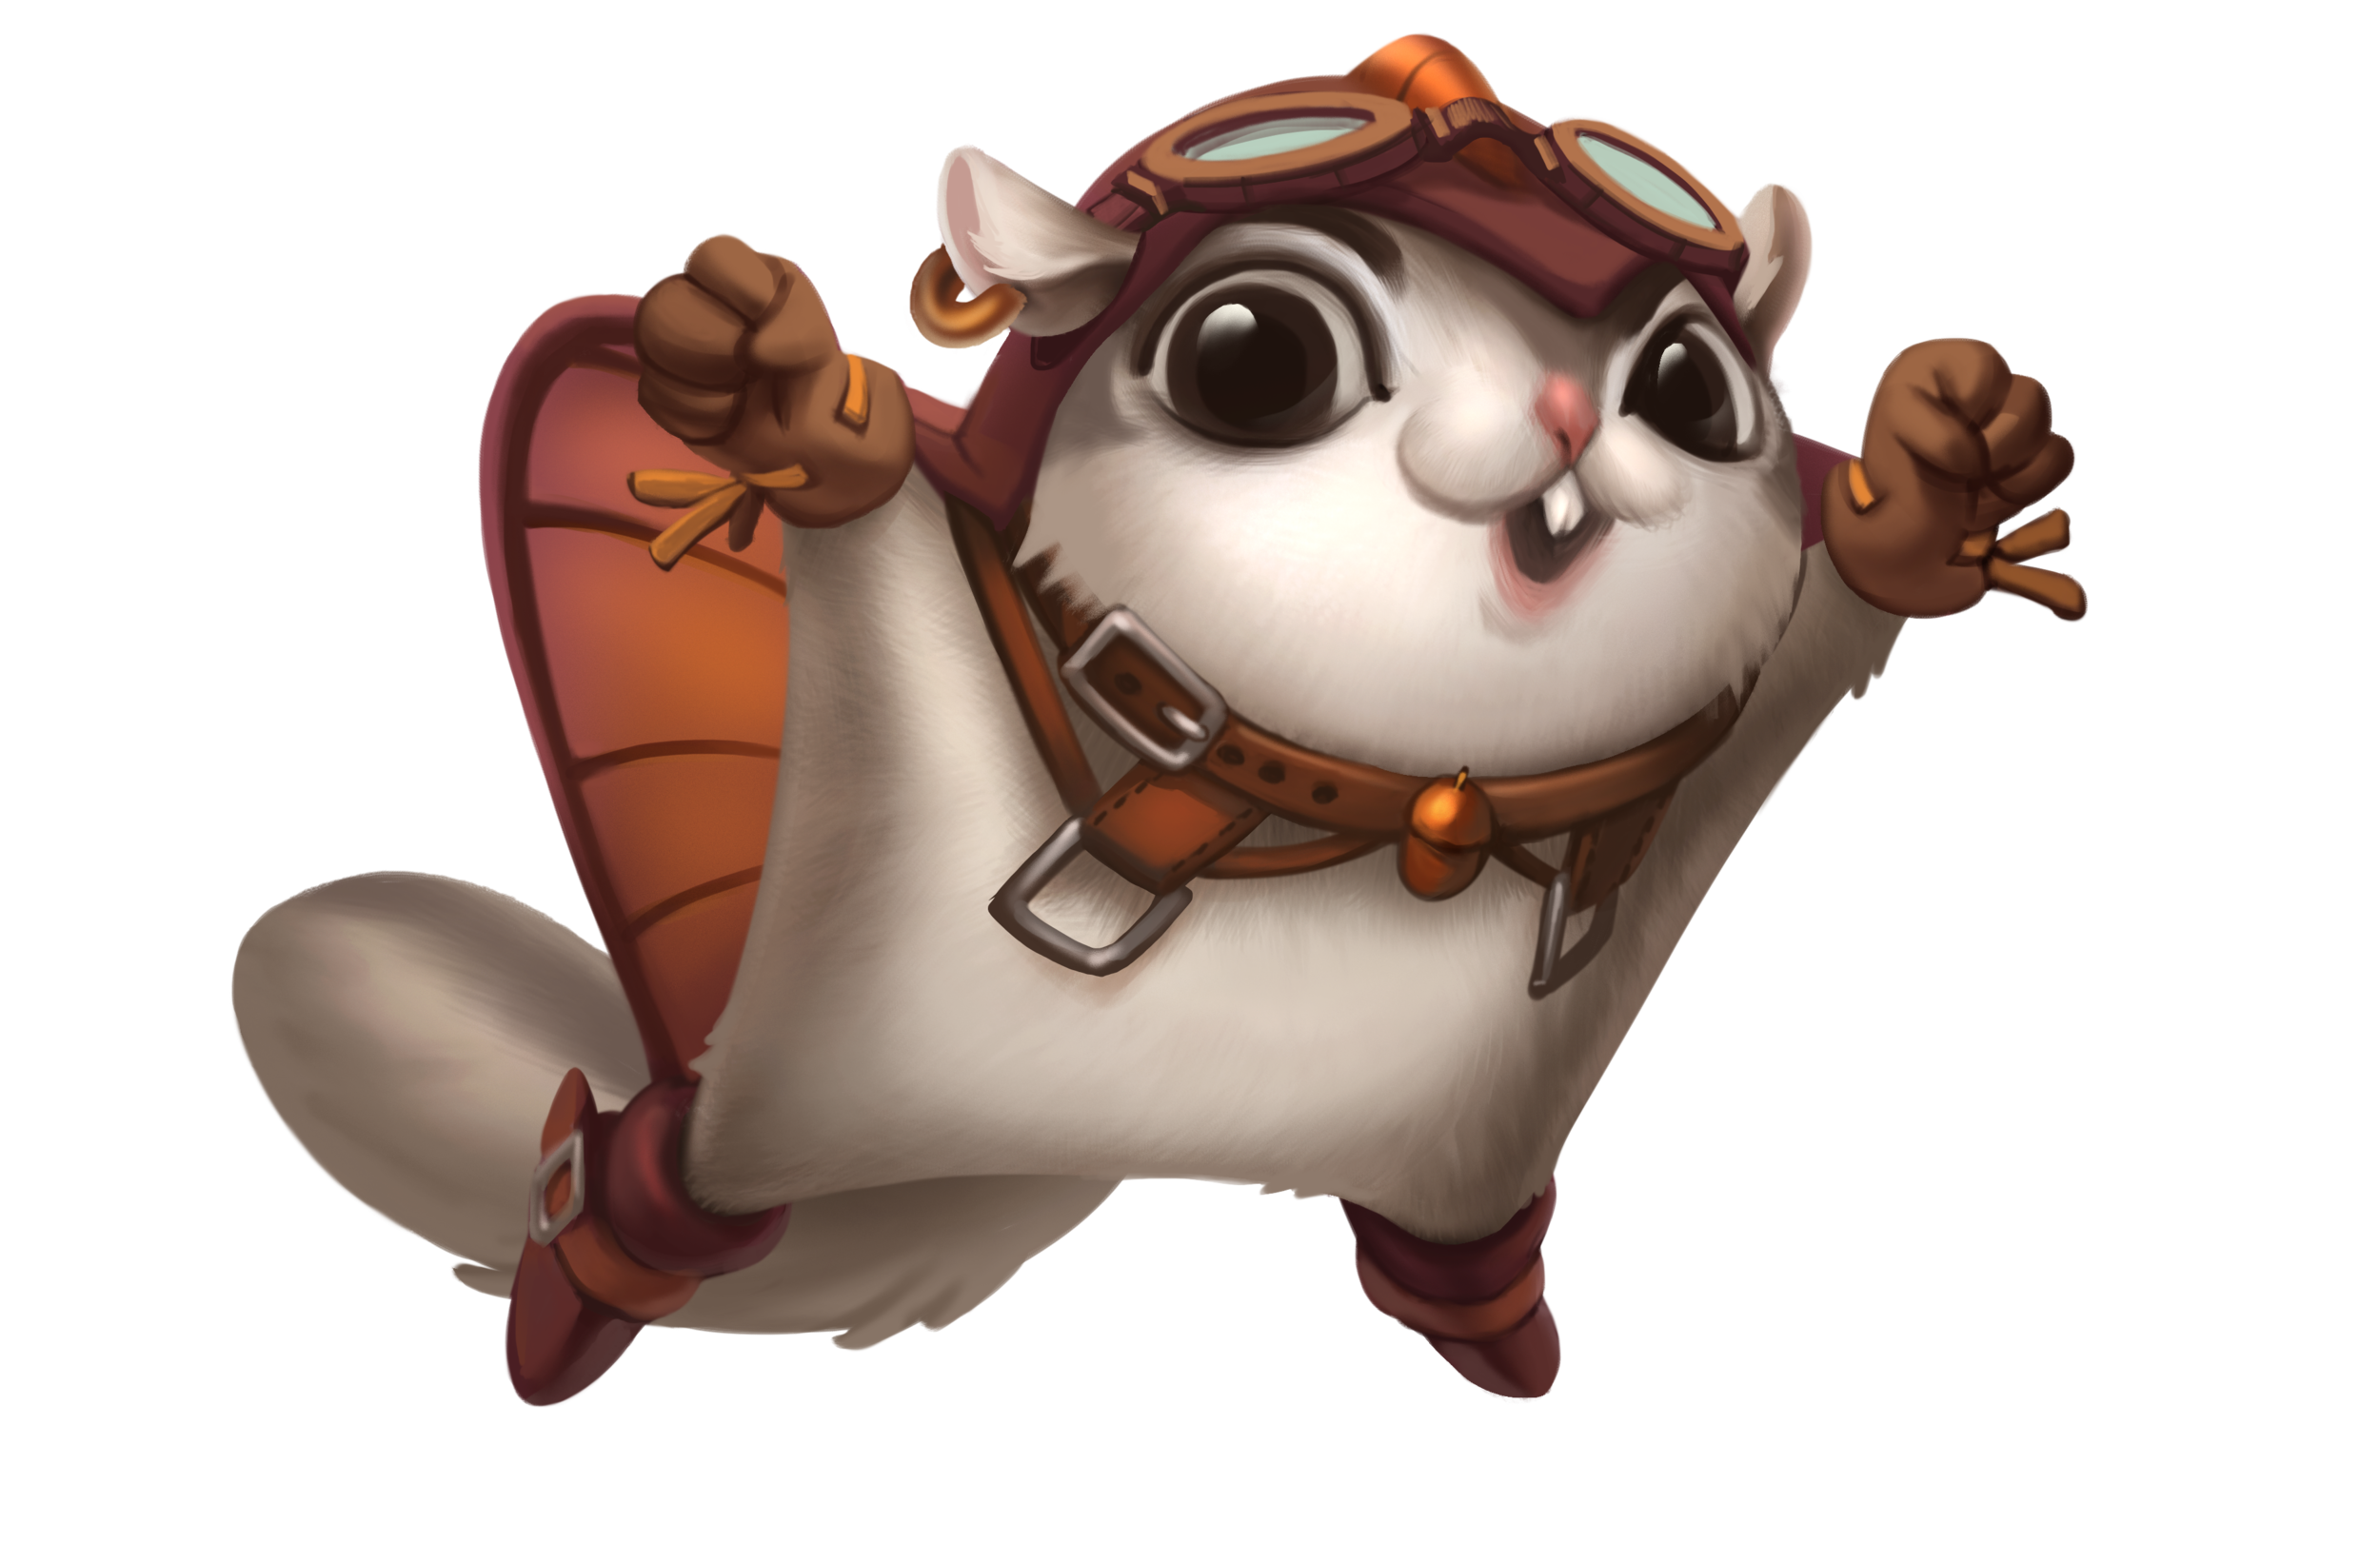 C_JapaneseFlyingSquirrel_Level2.png